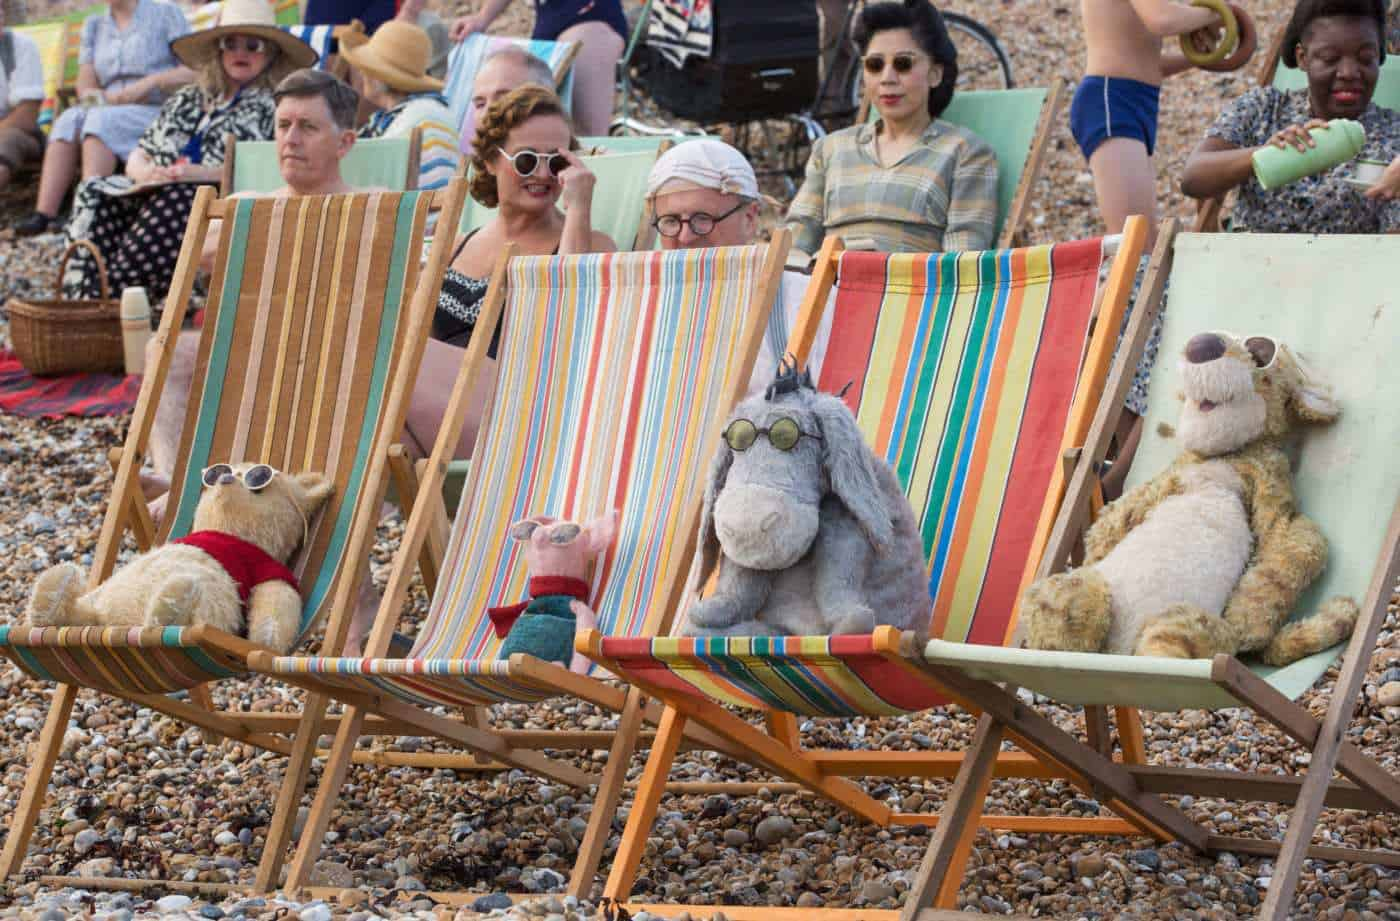 Winnie the Pooh, Piglet, Eeyore and Tigger relax at the beach in Disney's CHRISTOPHER ROBIN.